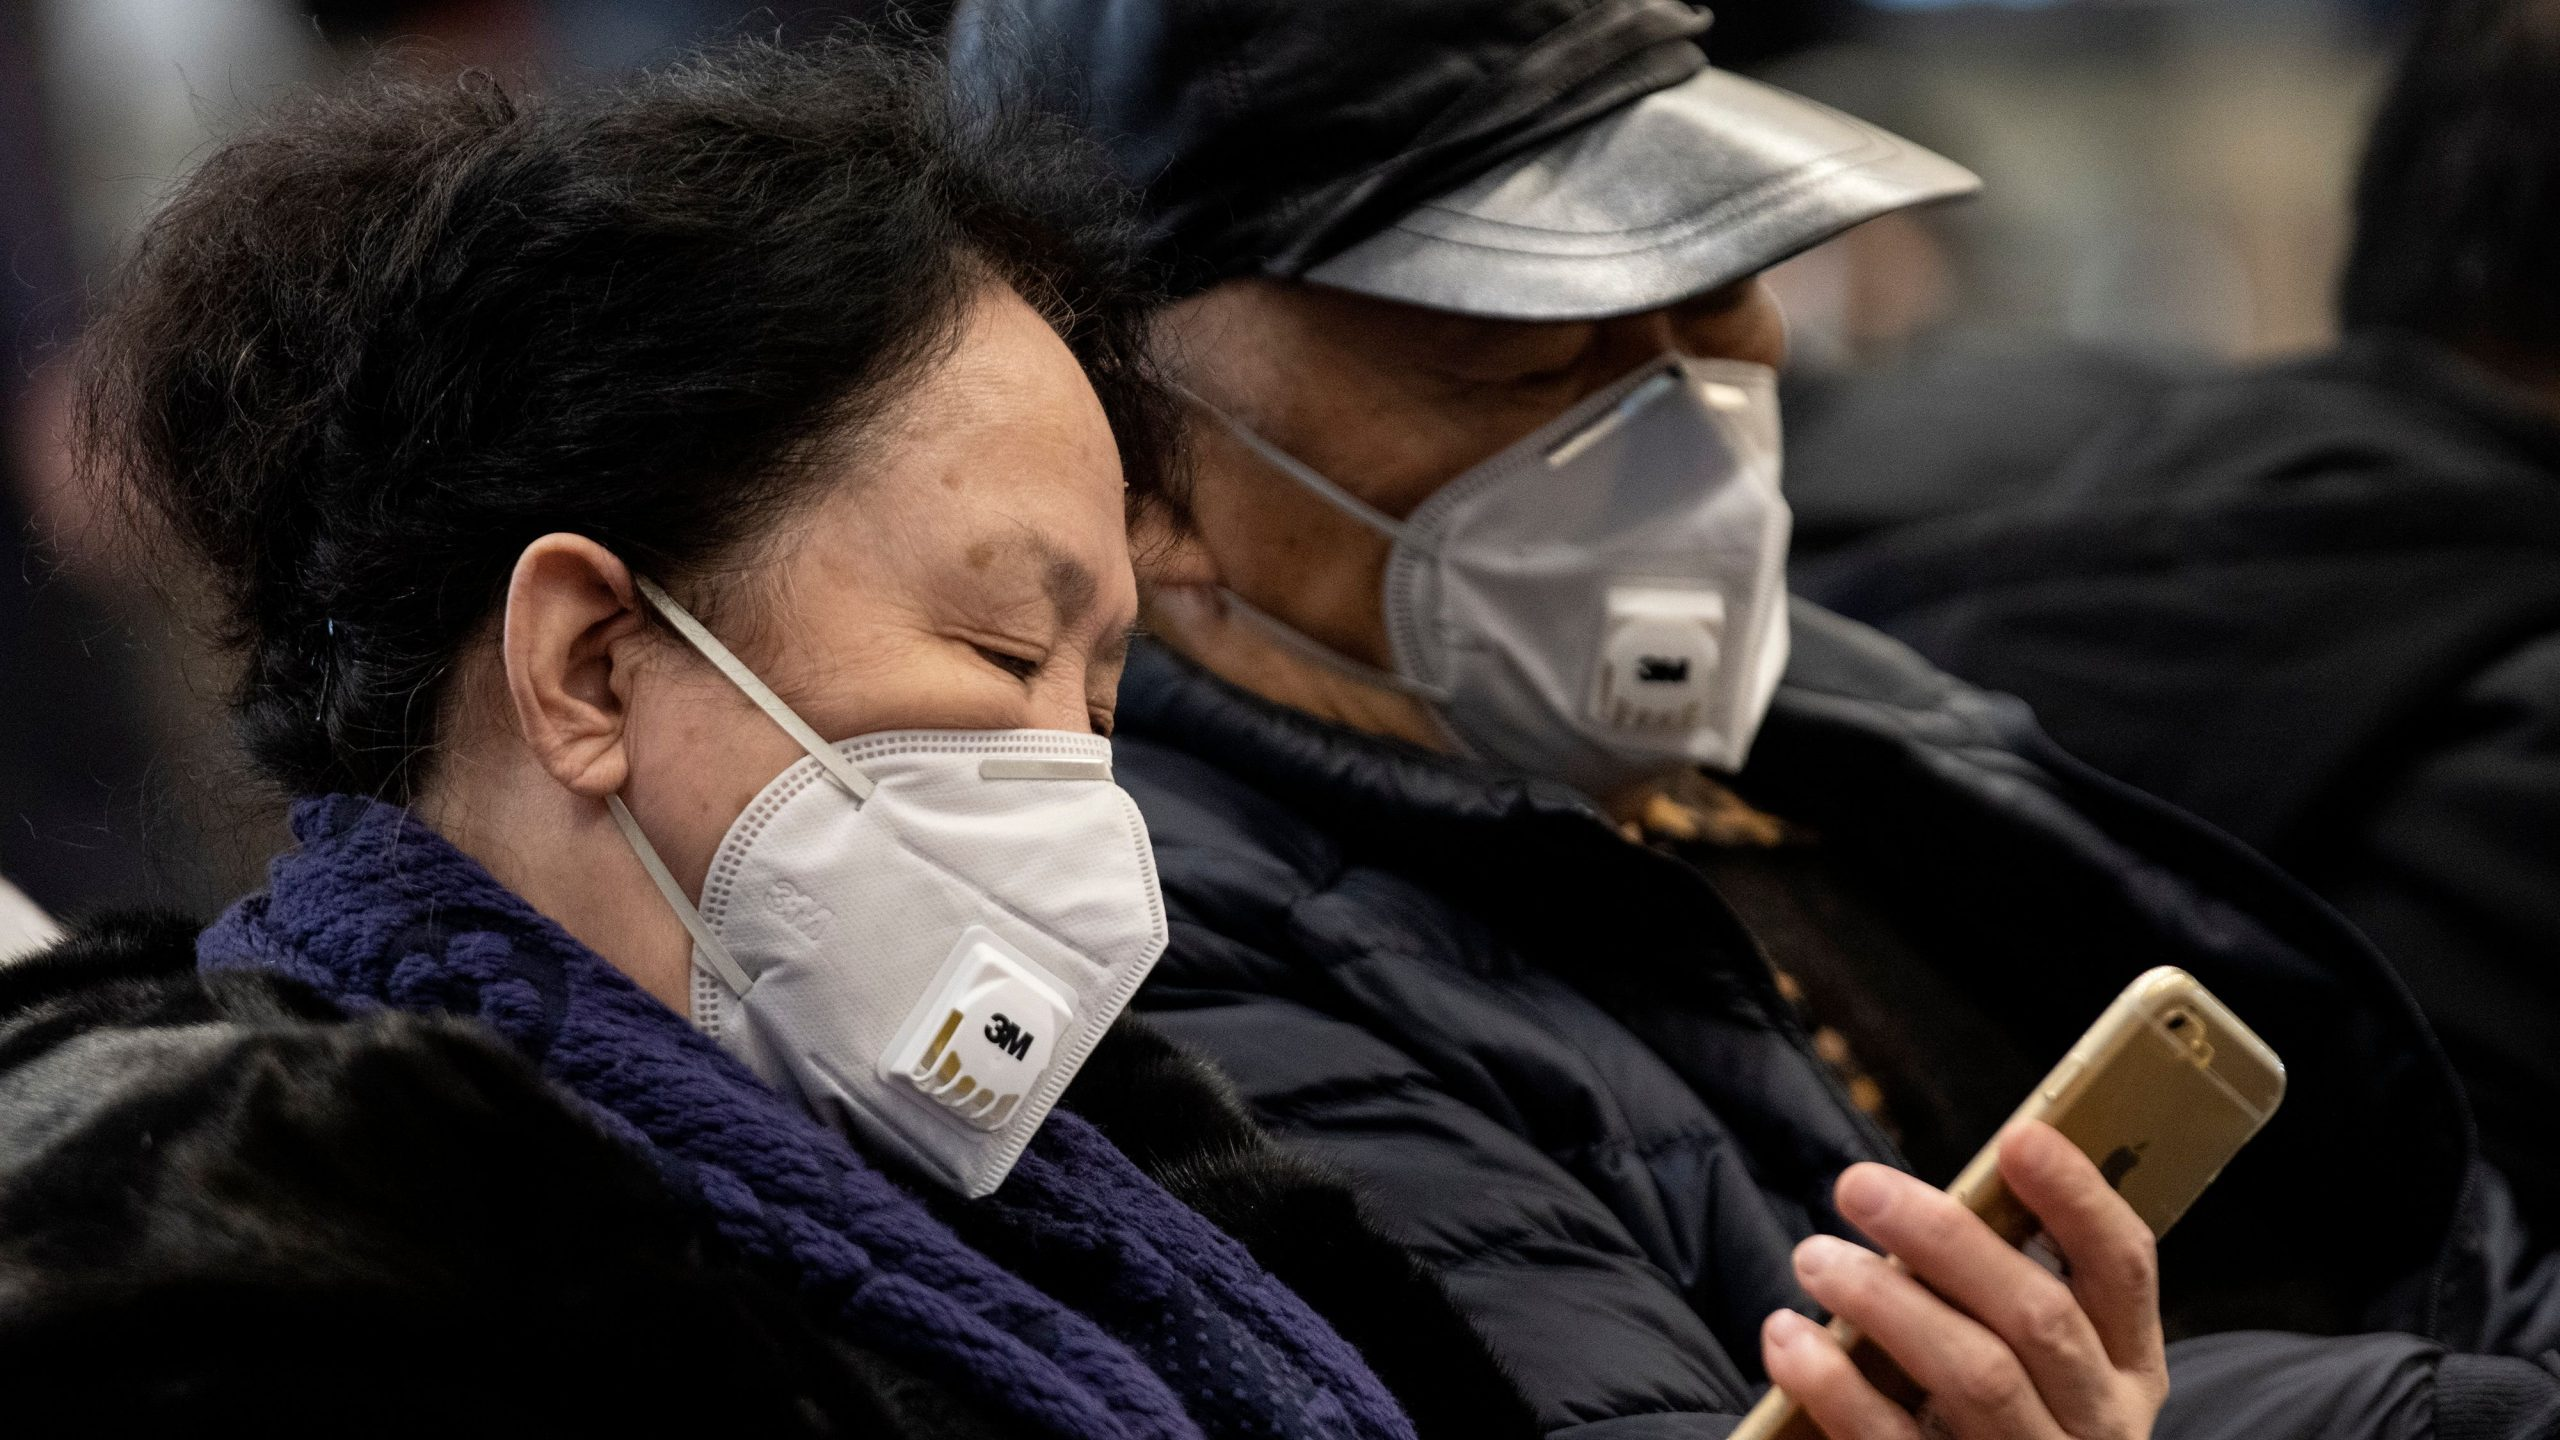 Travelers wearing protective rest on a bench after arriving at the Beijing Capital Airport in Beijing on Jan. 21, 2020. (Credit: NOEL CELIS/AFP via Getty Images)